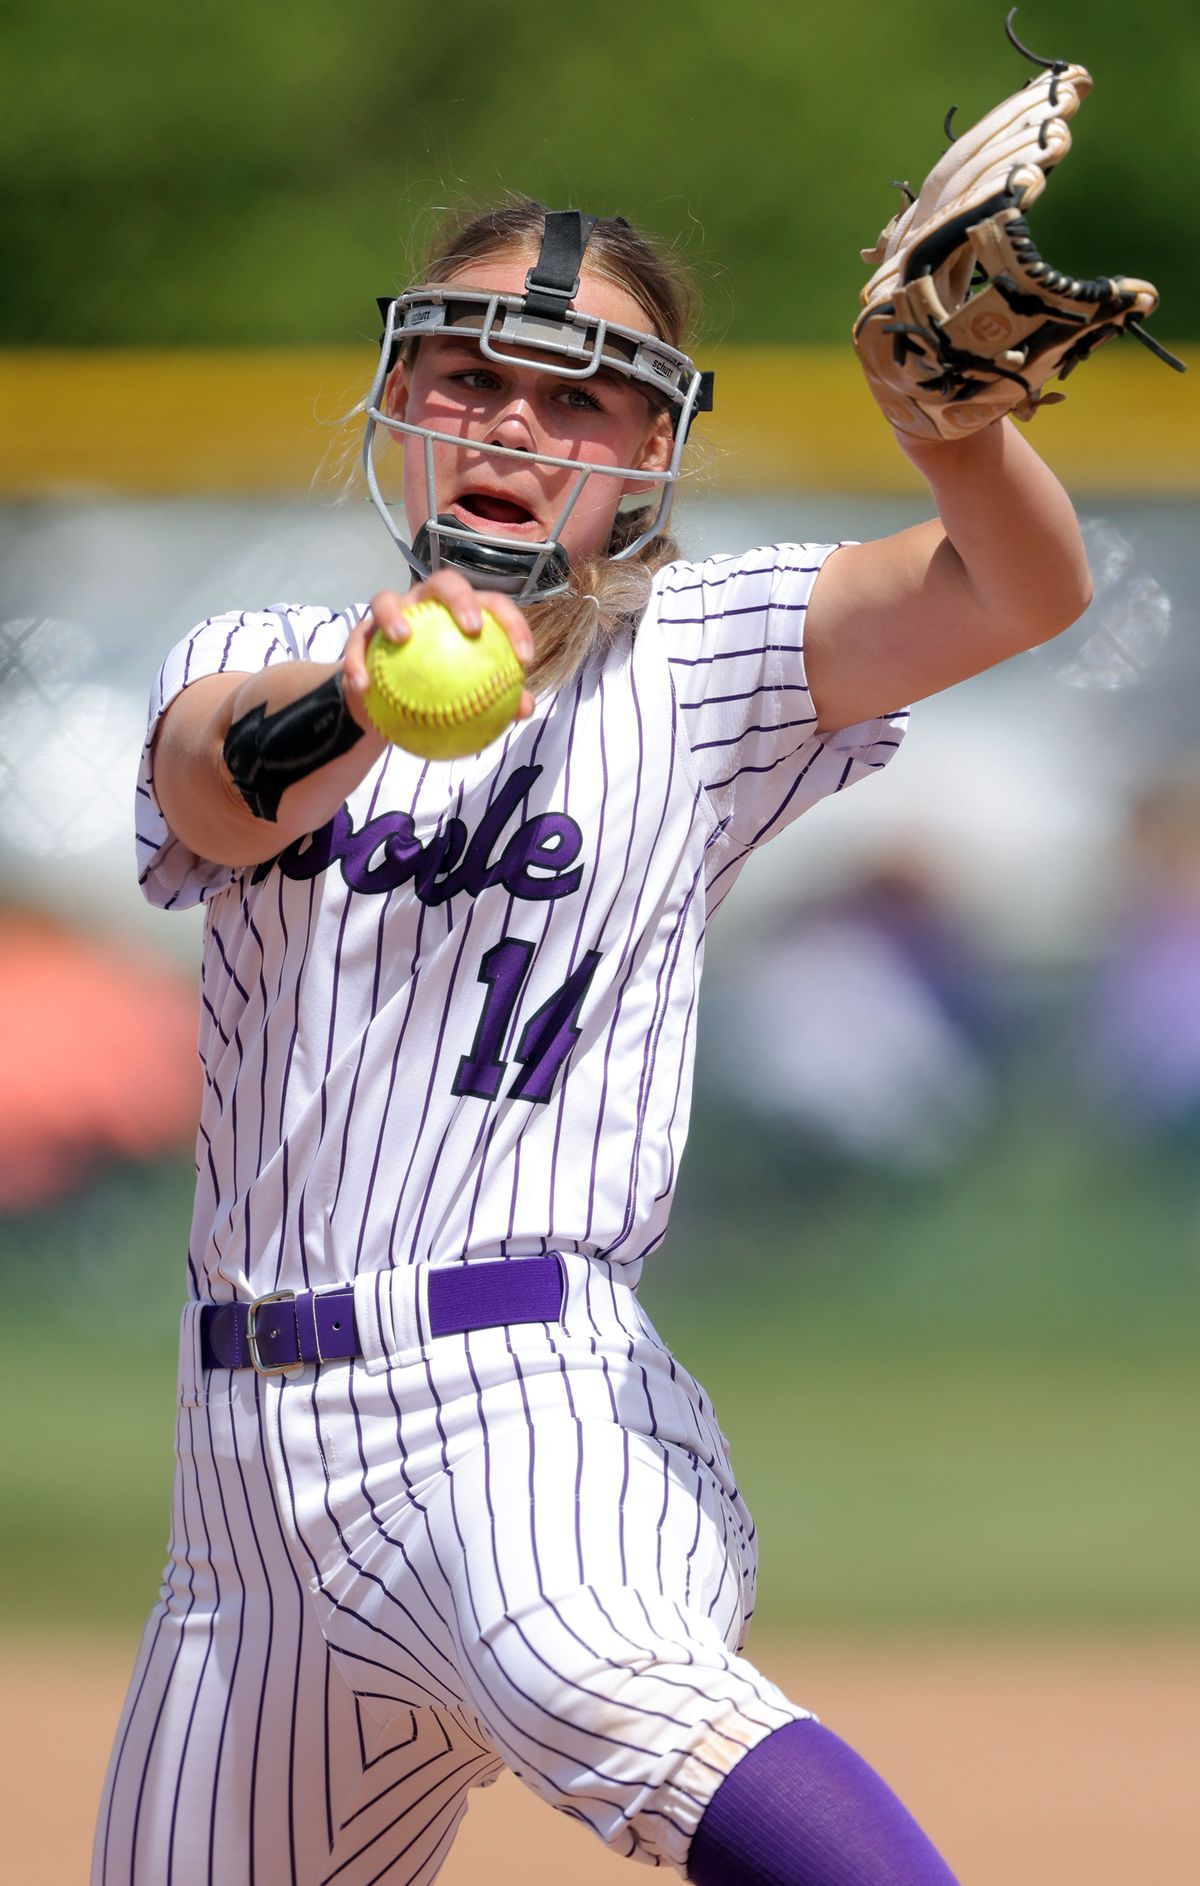 Tooele's pitcher Attlyn Johnston, sends a pitch as the Buffaloes and Bear River play for the 4A softball championship in Spanish Fork on Saturday, May 22, 2021. Bear River won both games.